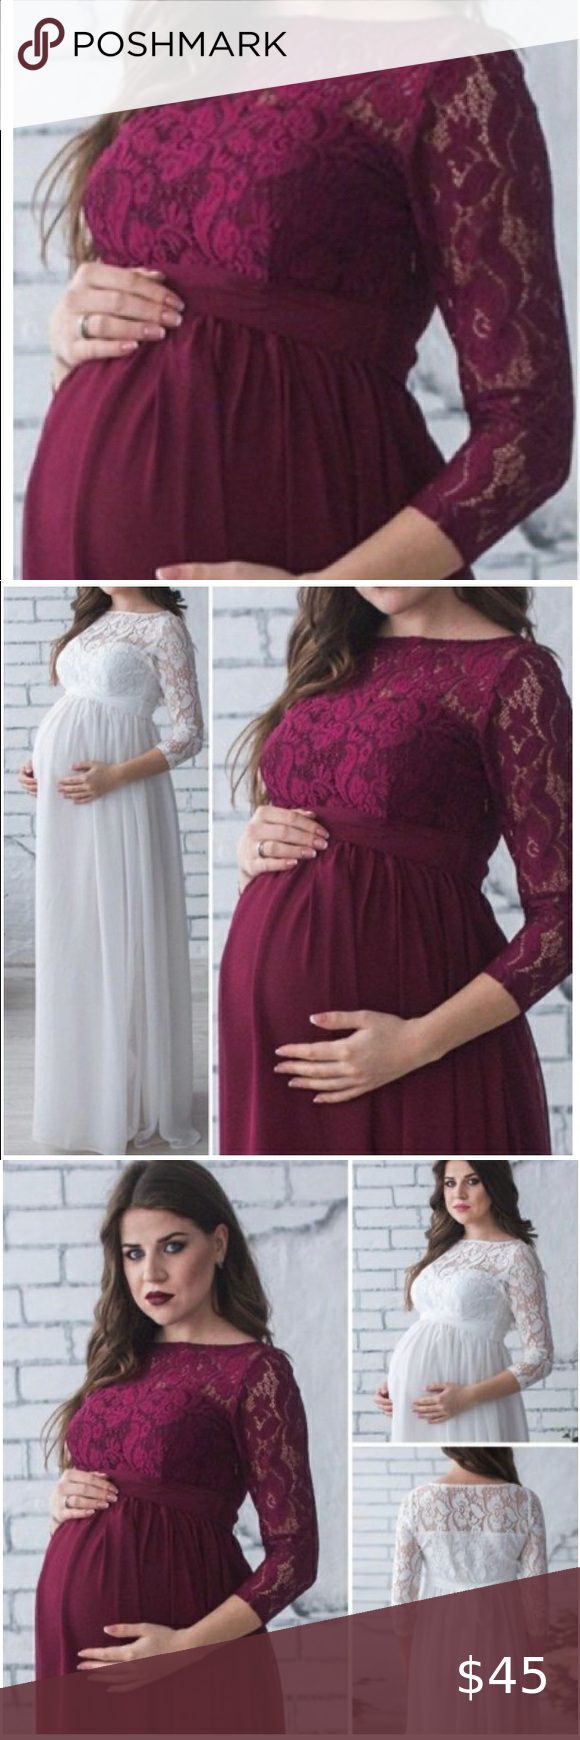 Photo of Maternity Photo Shoot/Gown Dress I wish this beautiful dress fit ☹️ But it i…